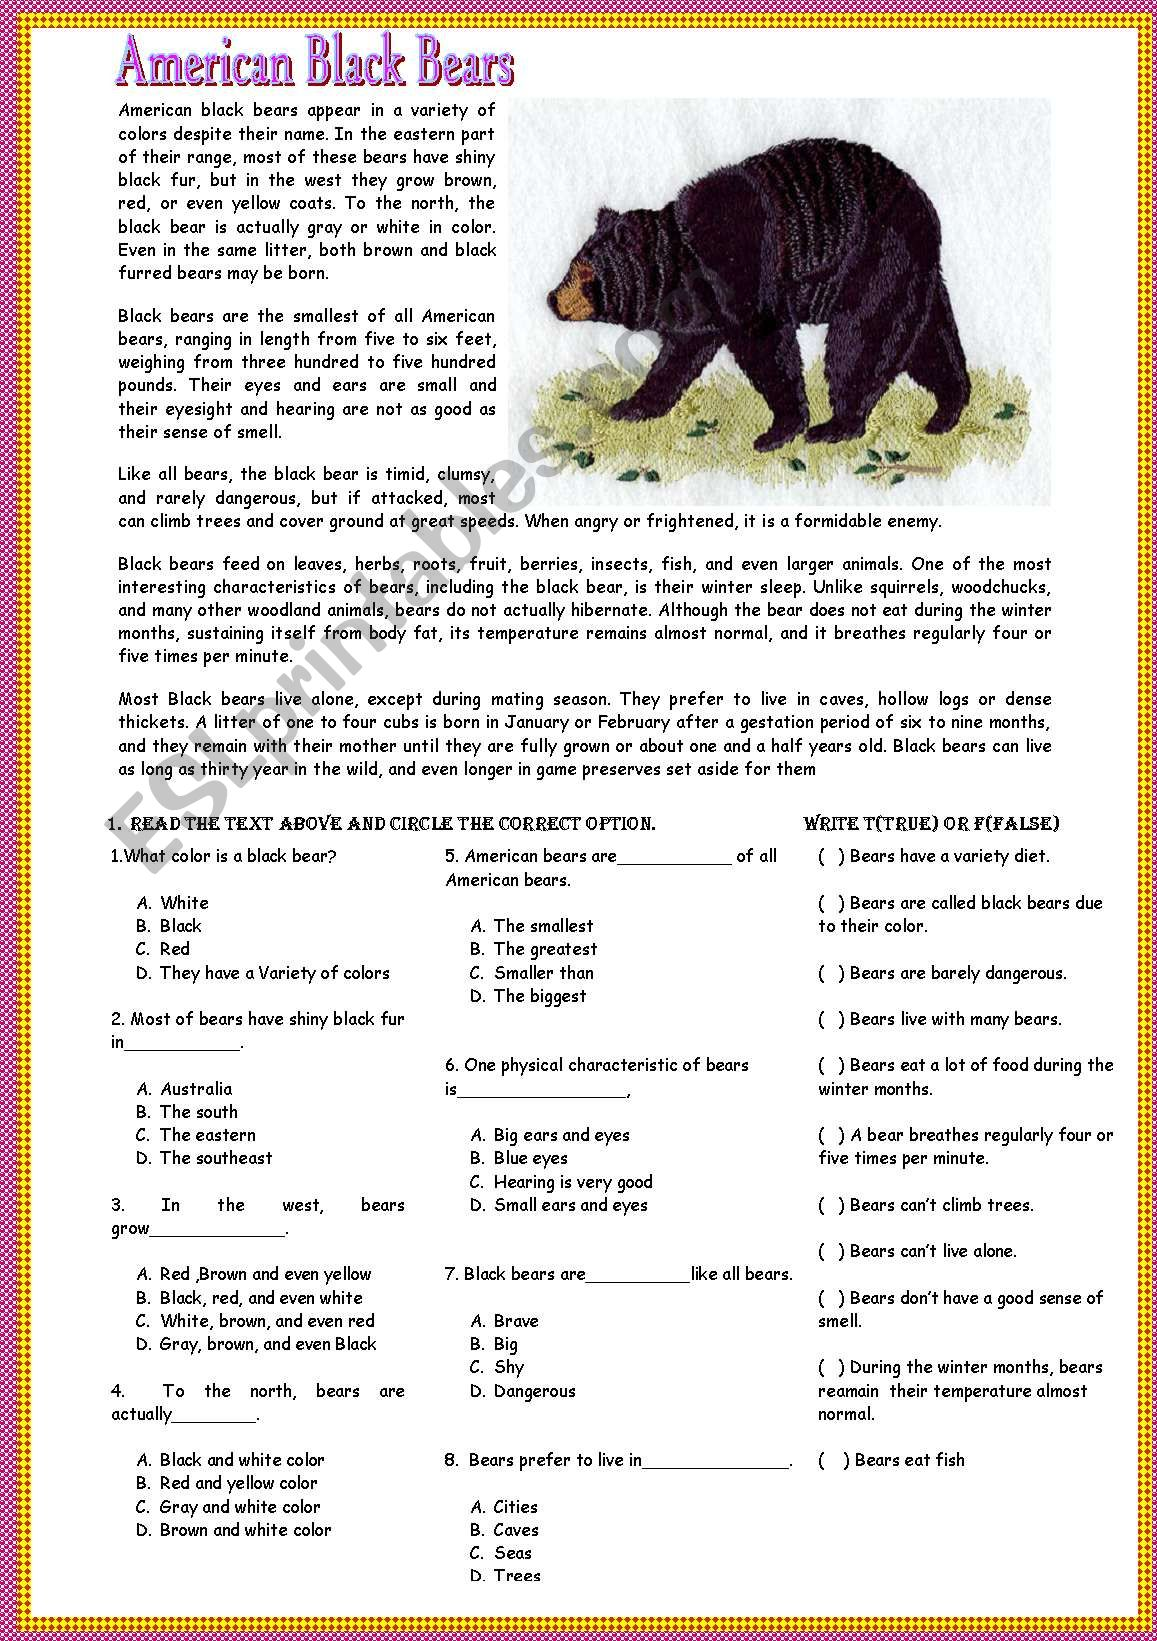 Reading American Black Bears